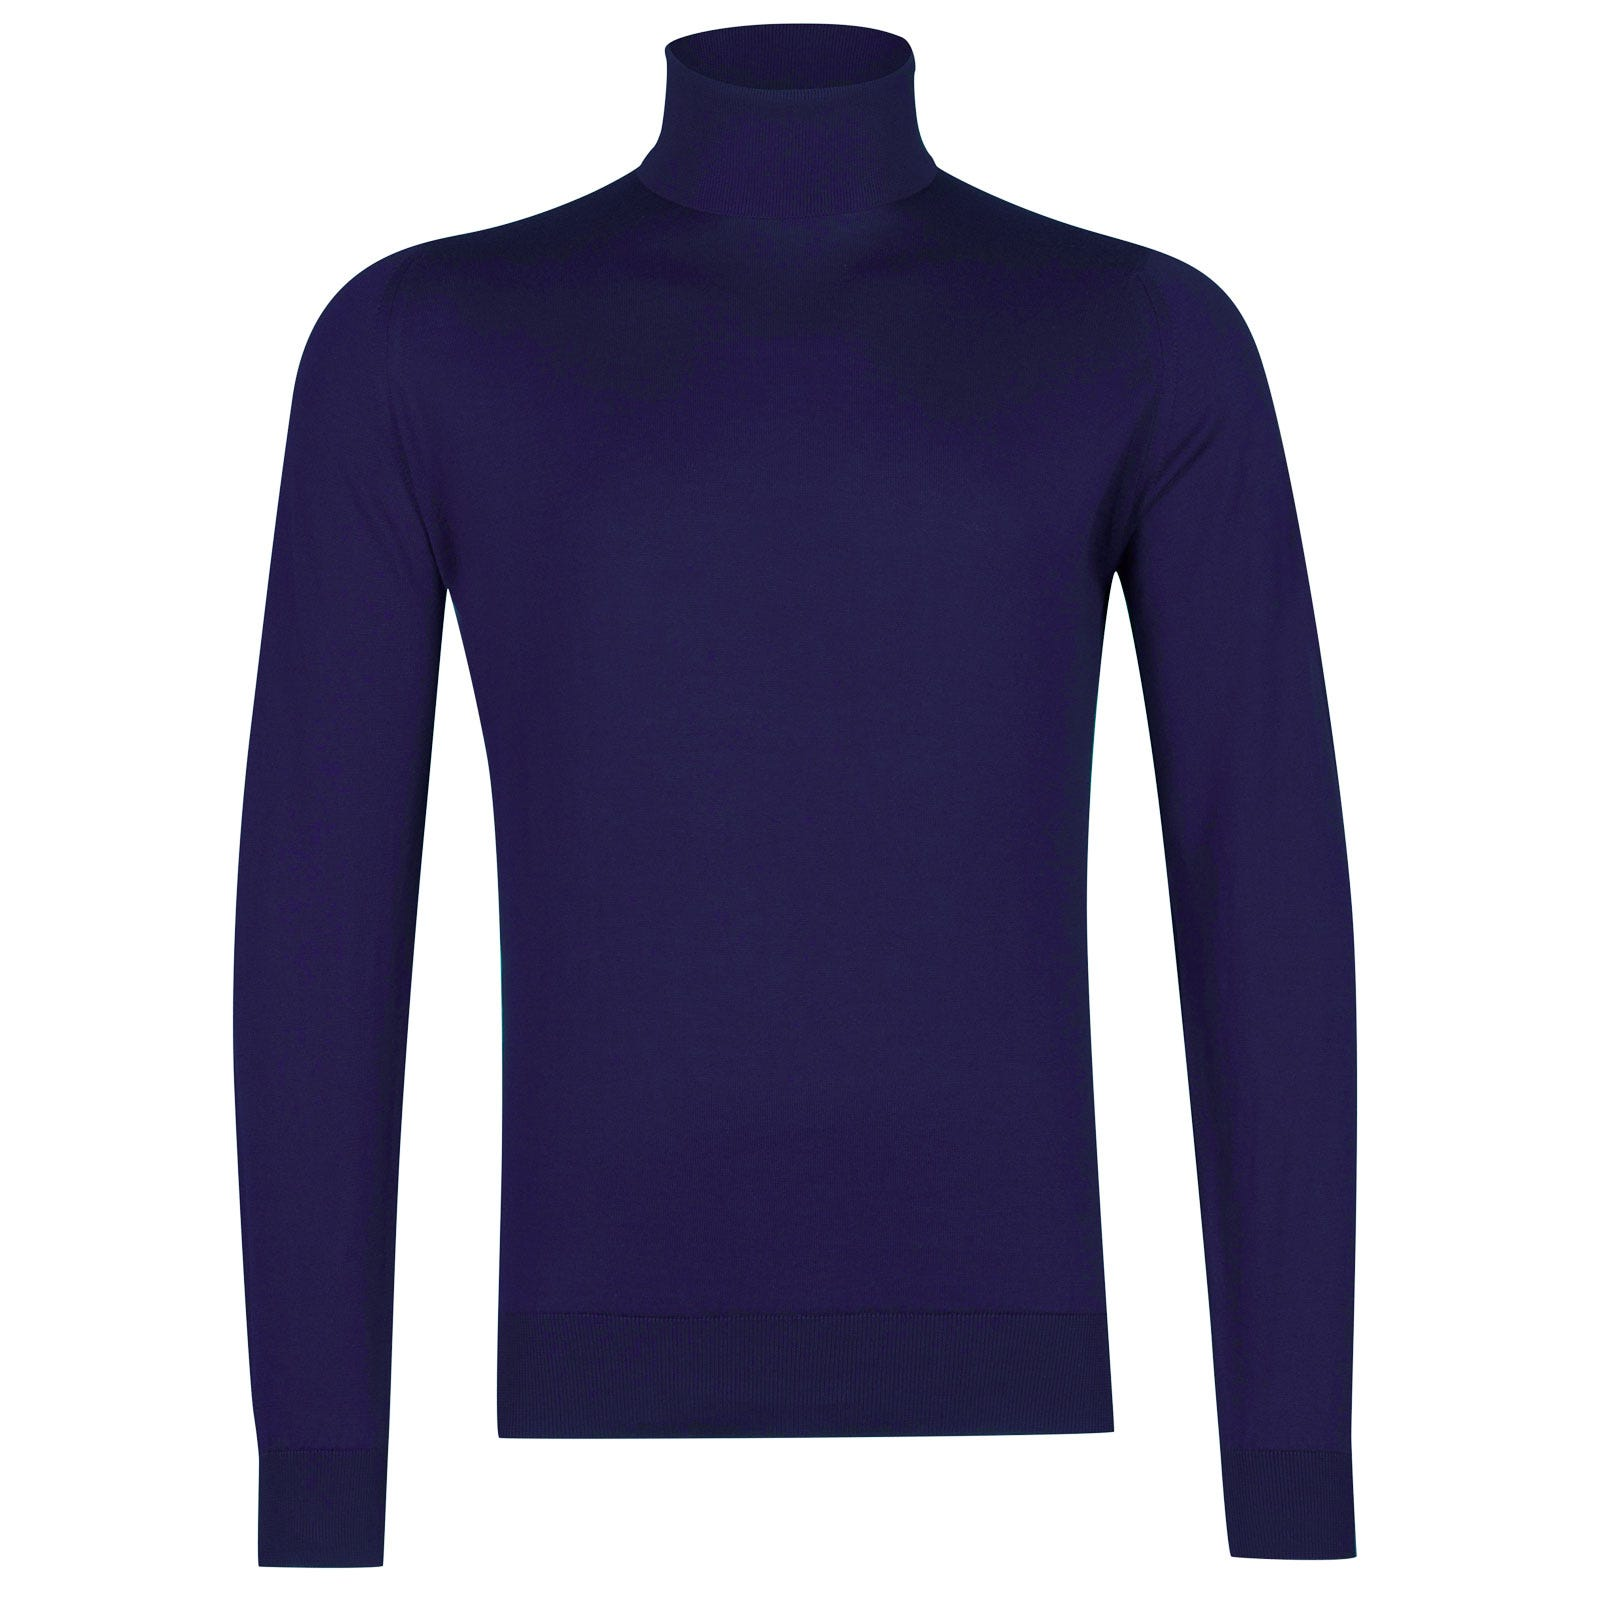 John Smedley Hawley Sea Island Cotton Pullover in Serge Blue-XXL